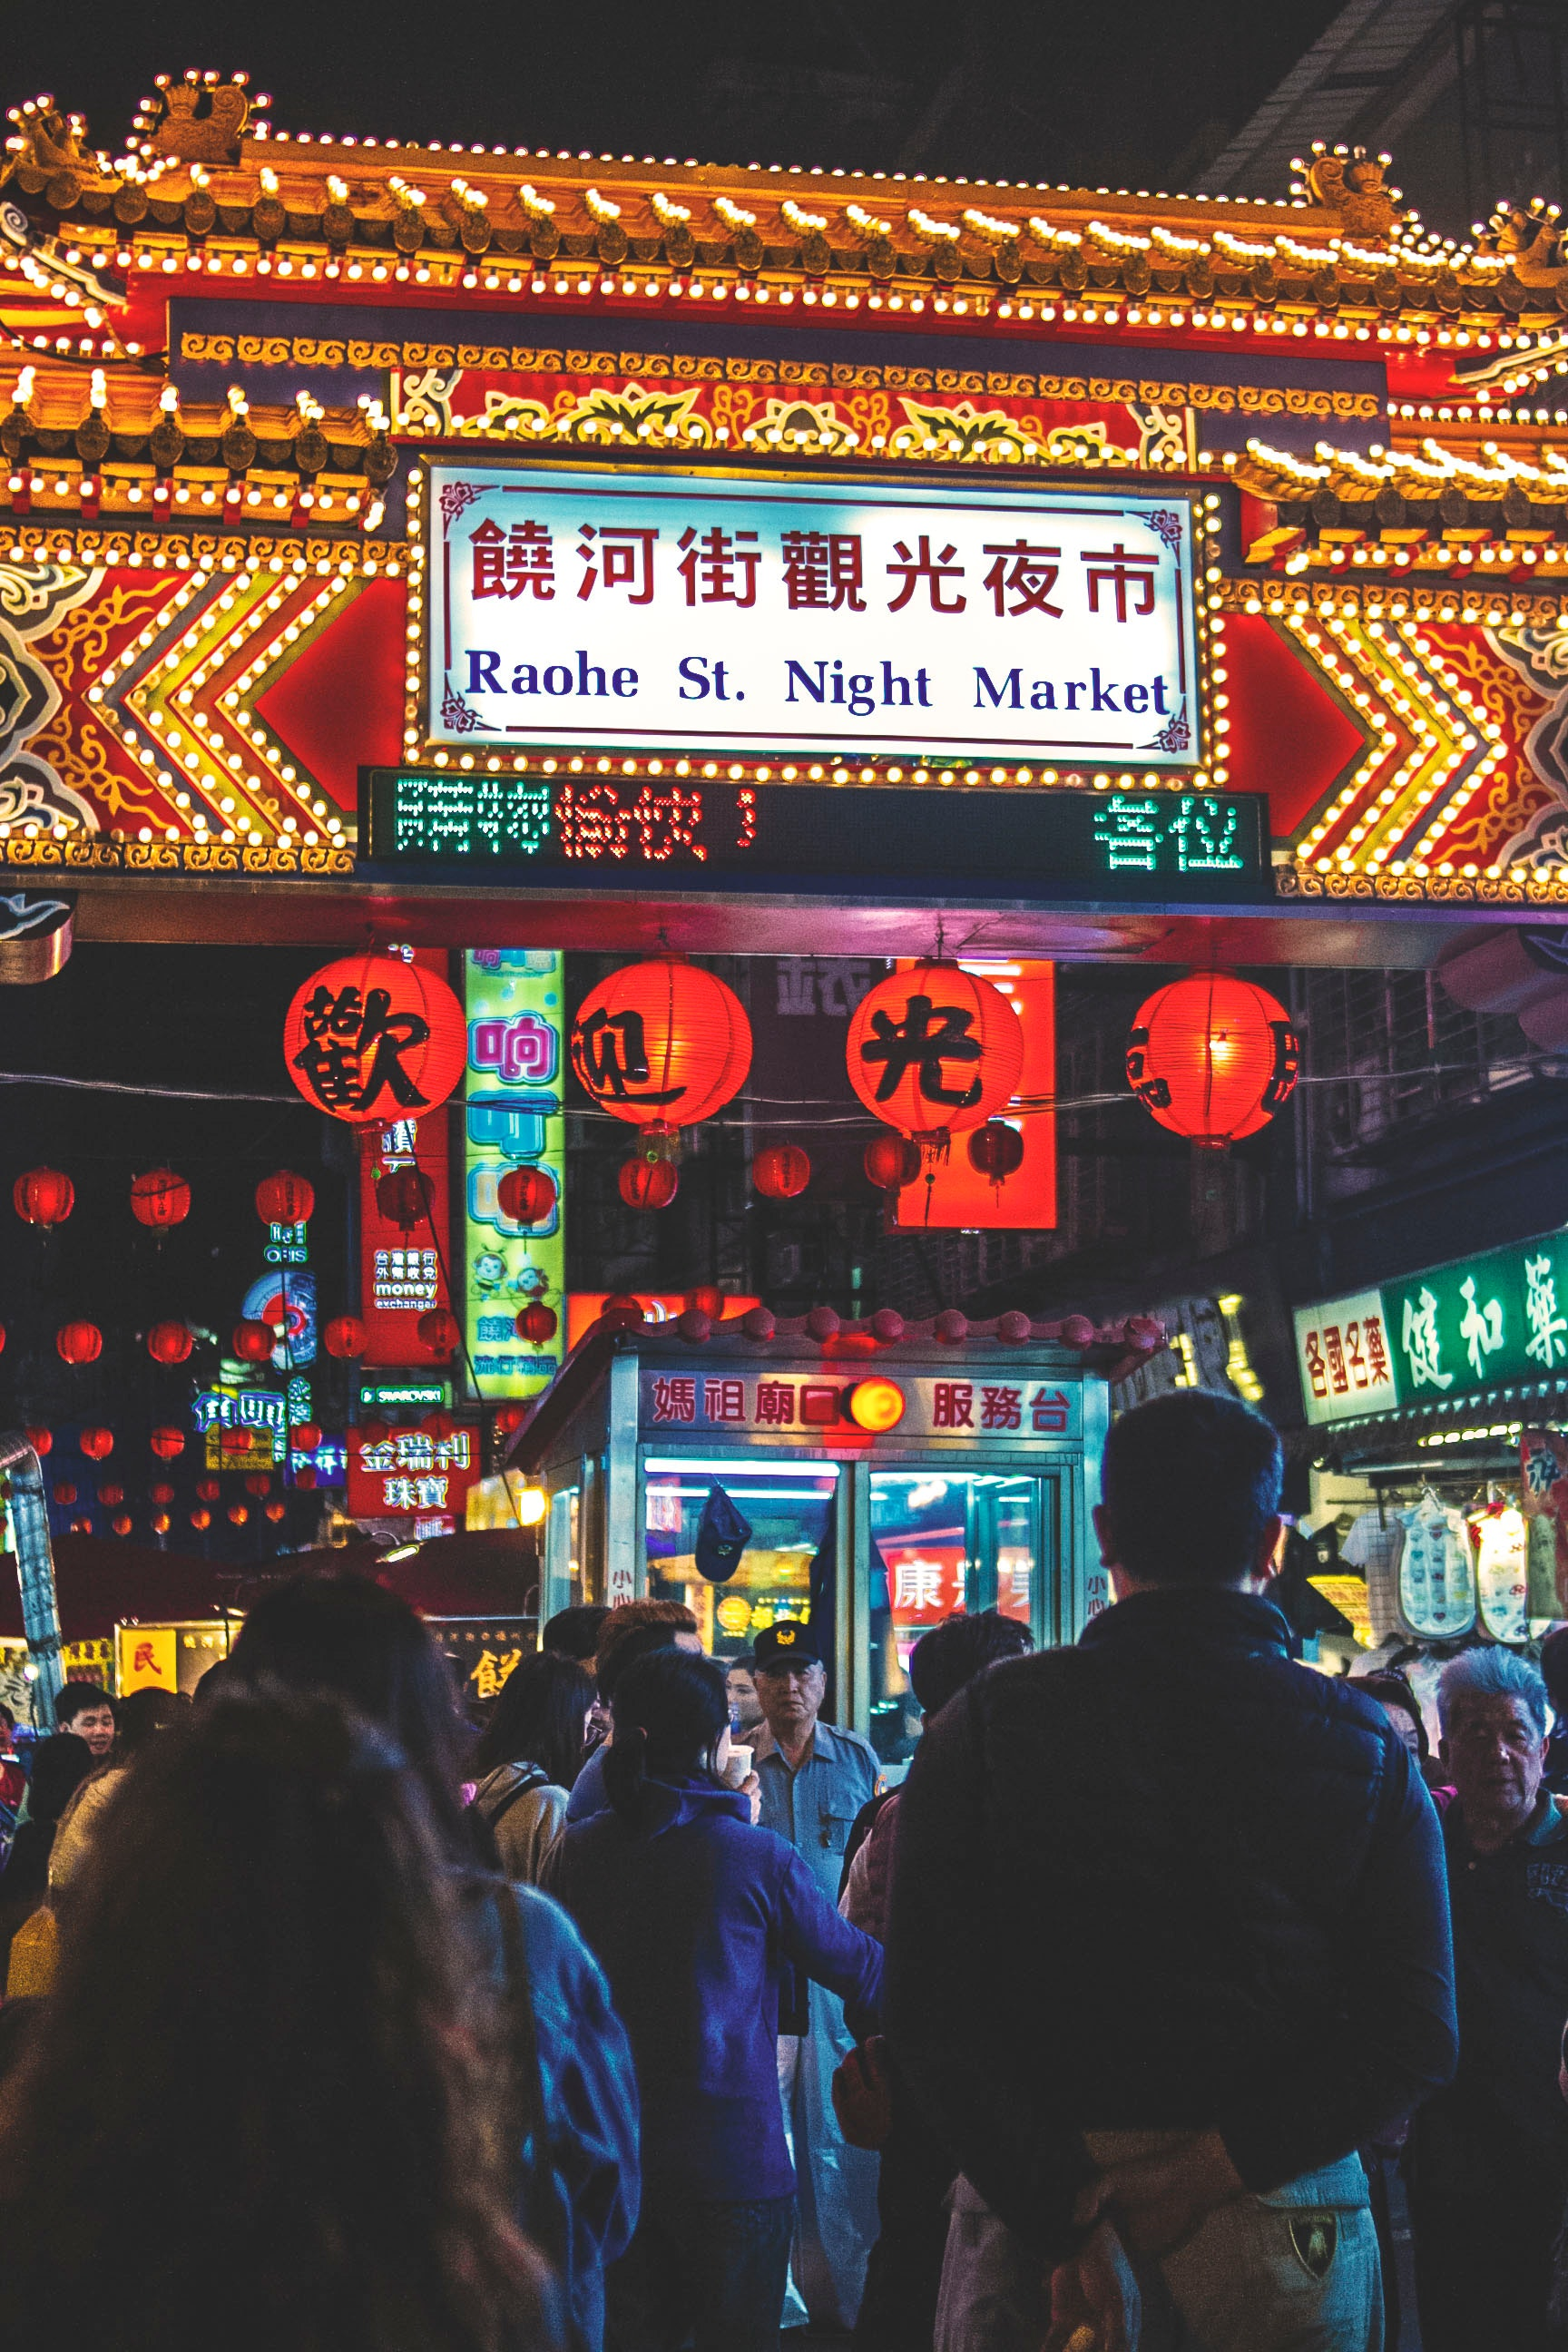 View of Raohe St. Night Market Arch With Kanji Texts and Group of People, Neon sign, Walking, Urban, Street, HQ Photo